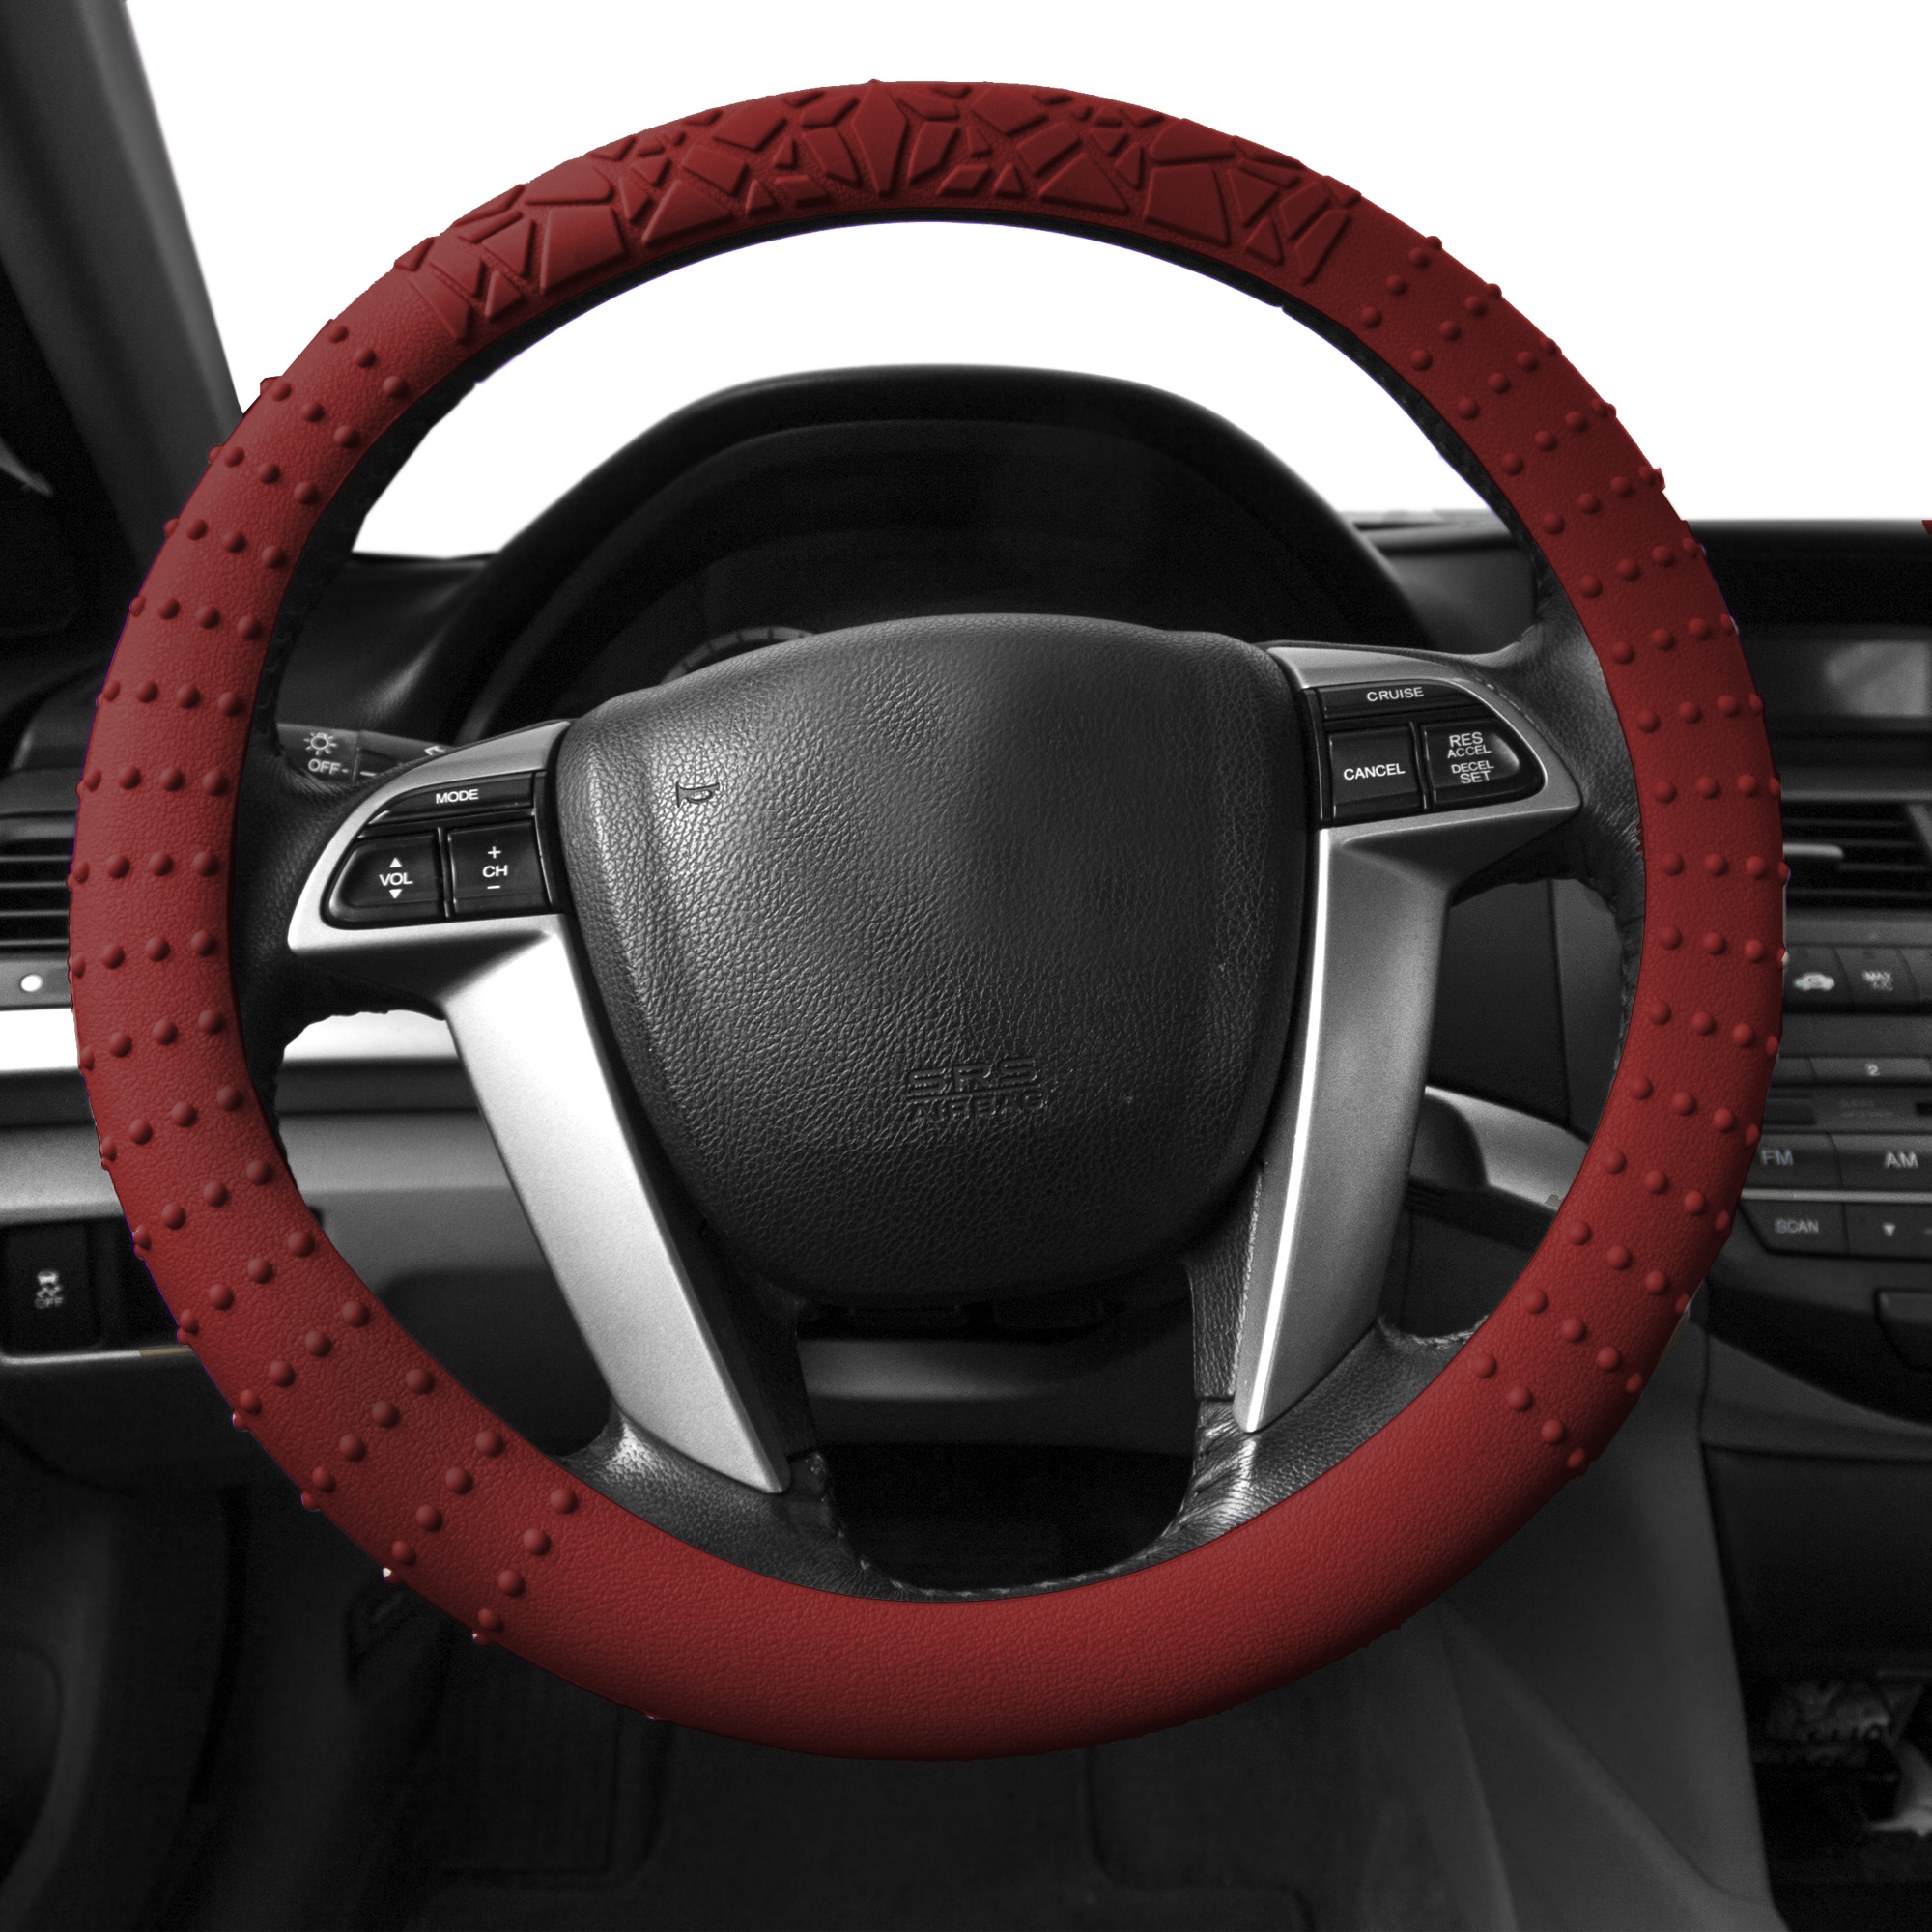 FH Group, Silicone Steering wheel cover 14 Colors Nibs Sturdy Massage Grip, Steering Cover